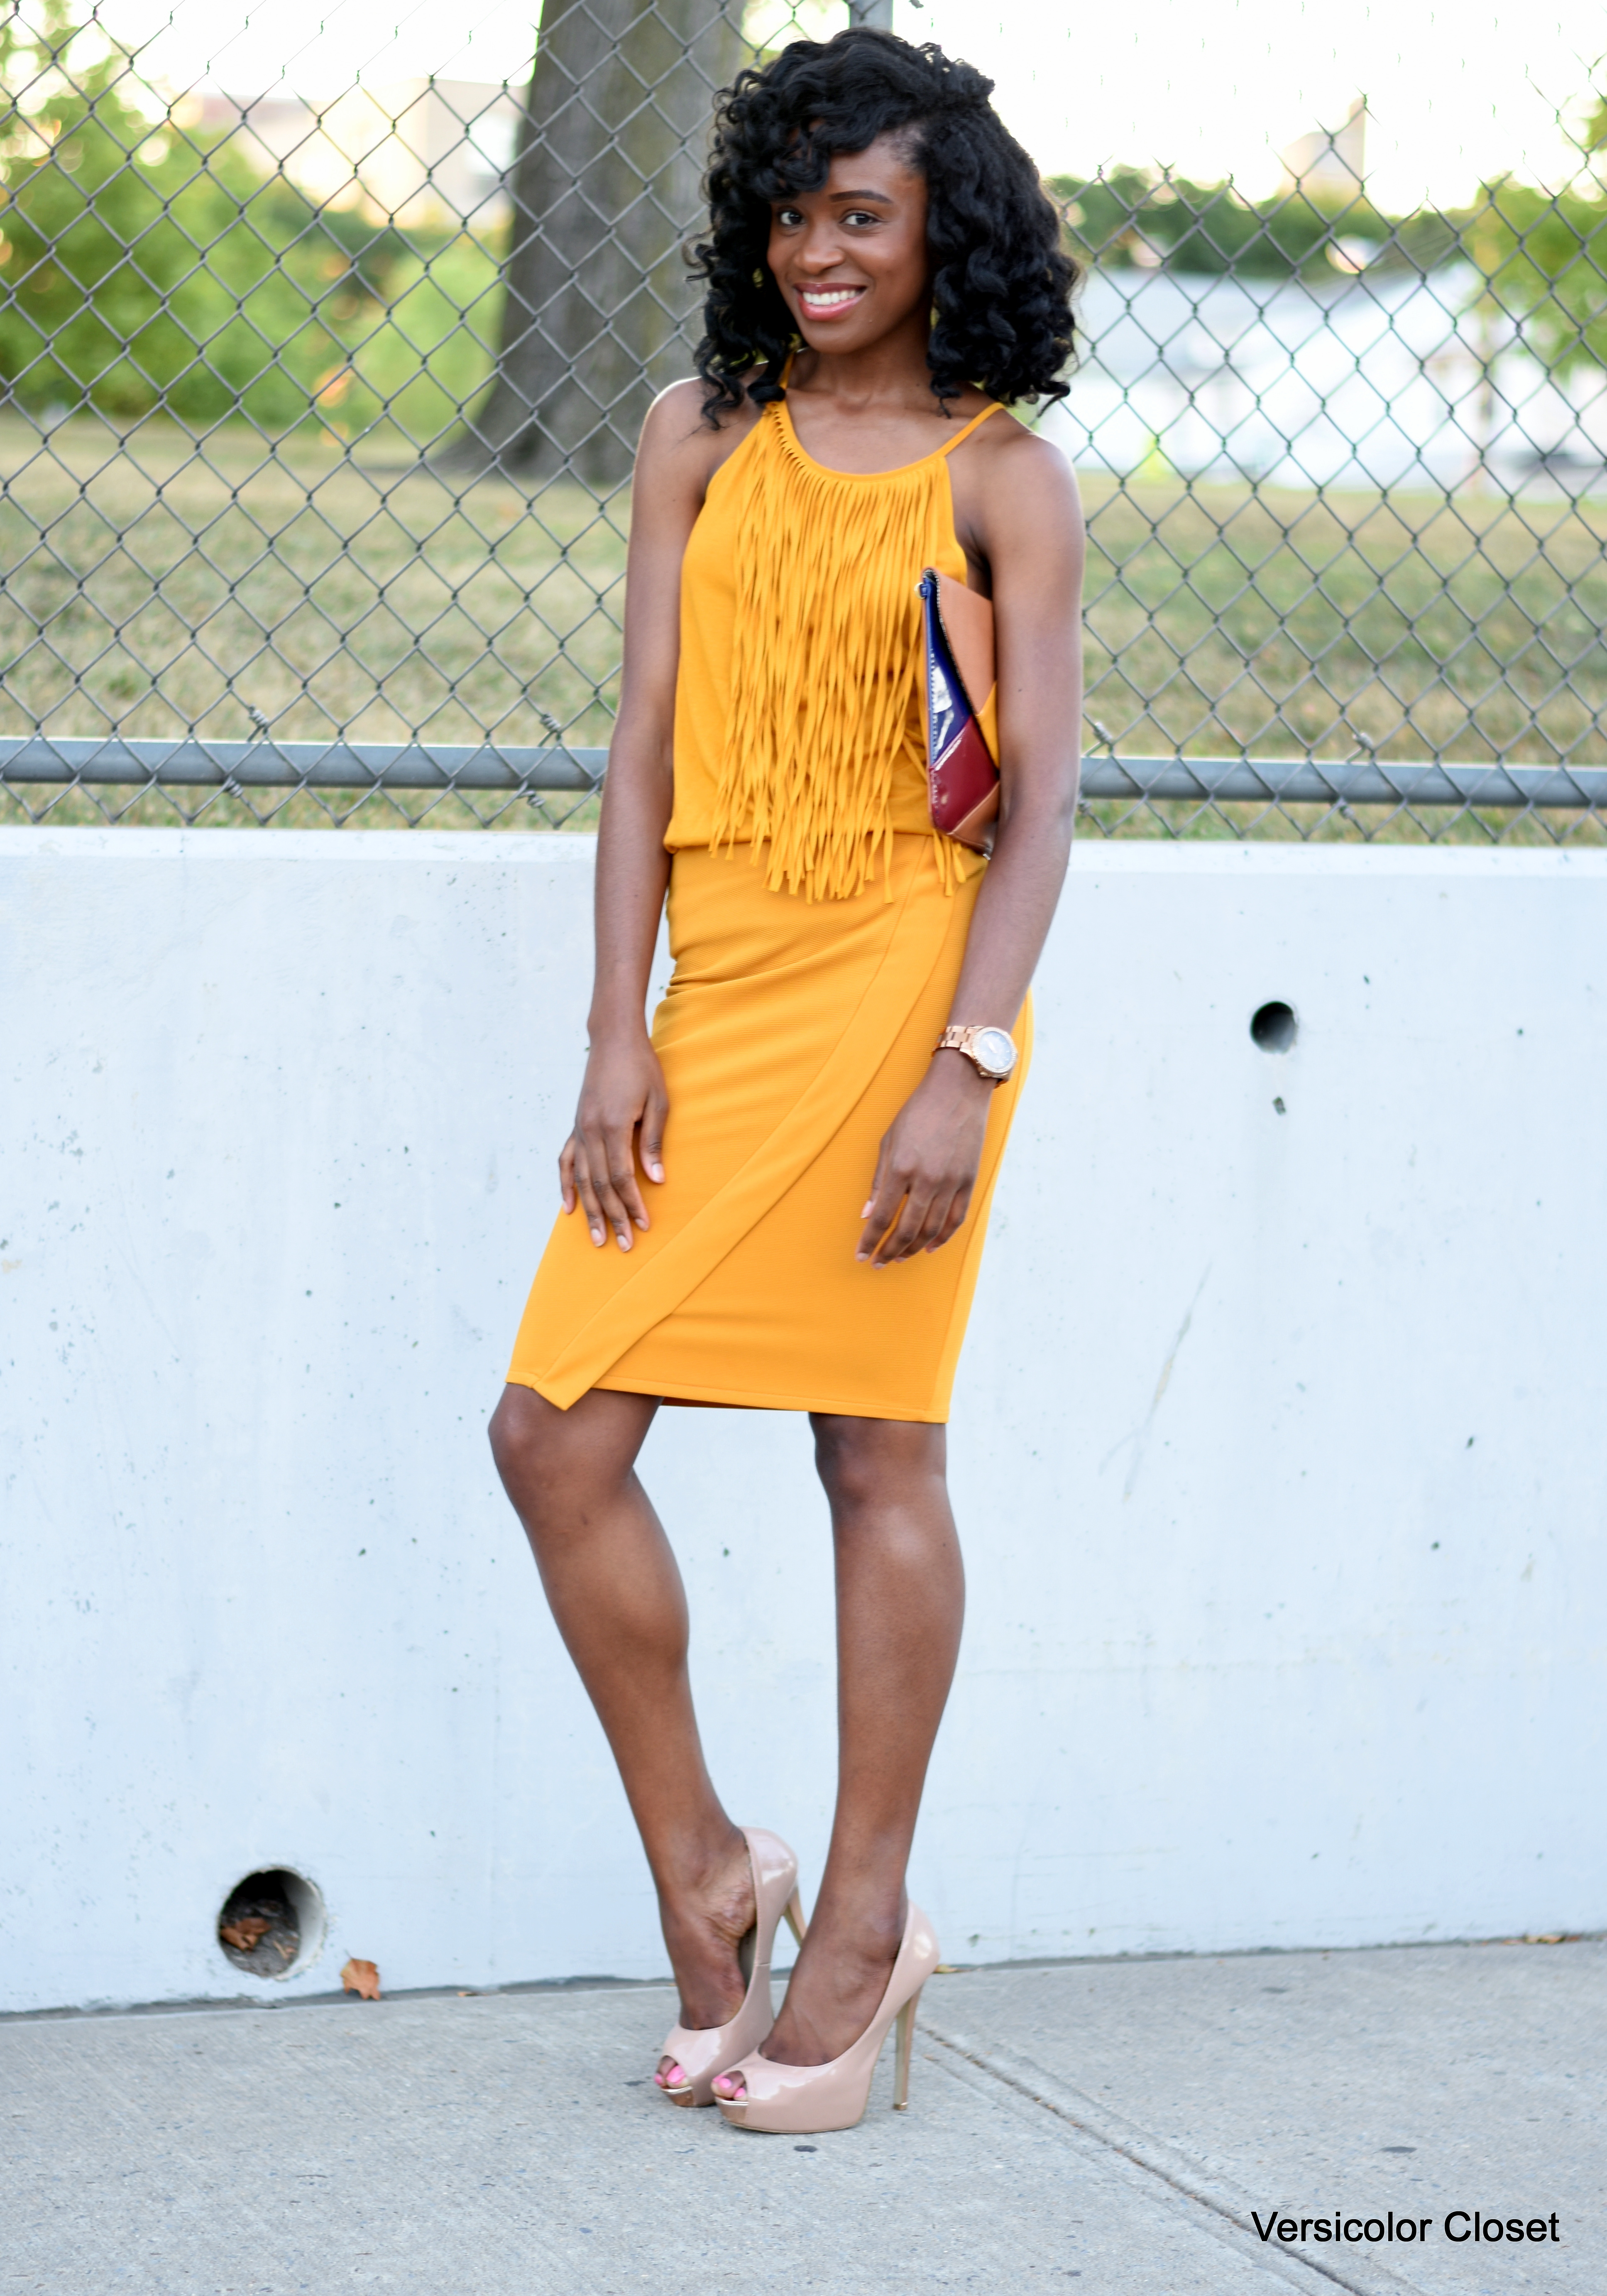 Mustard pencil skirt + fringe top (3)